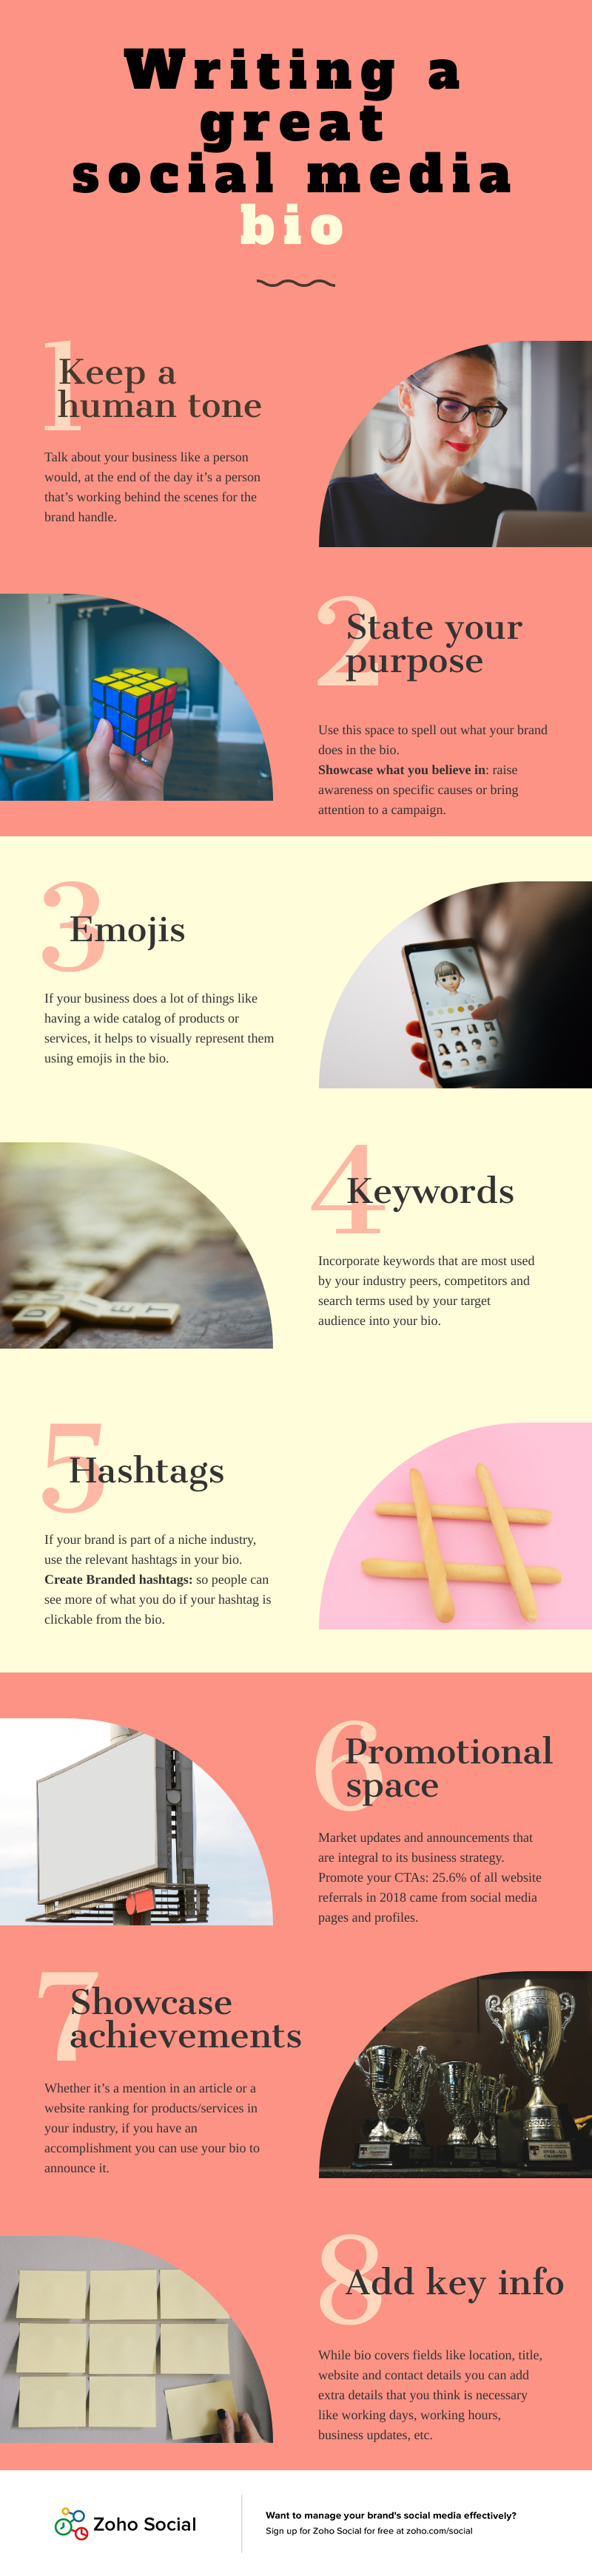 Infographic lists profile tips